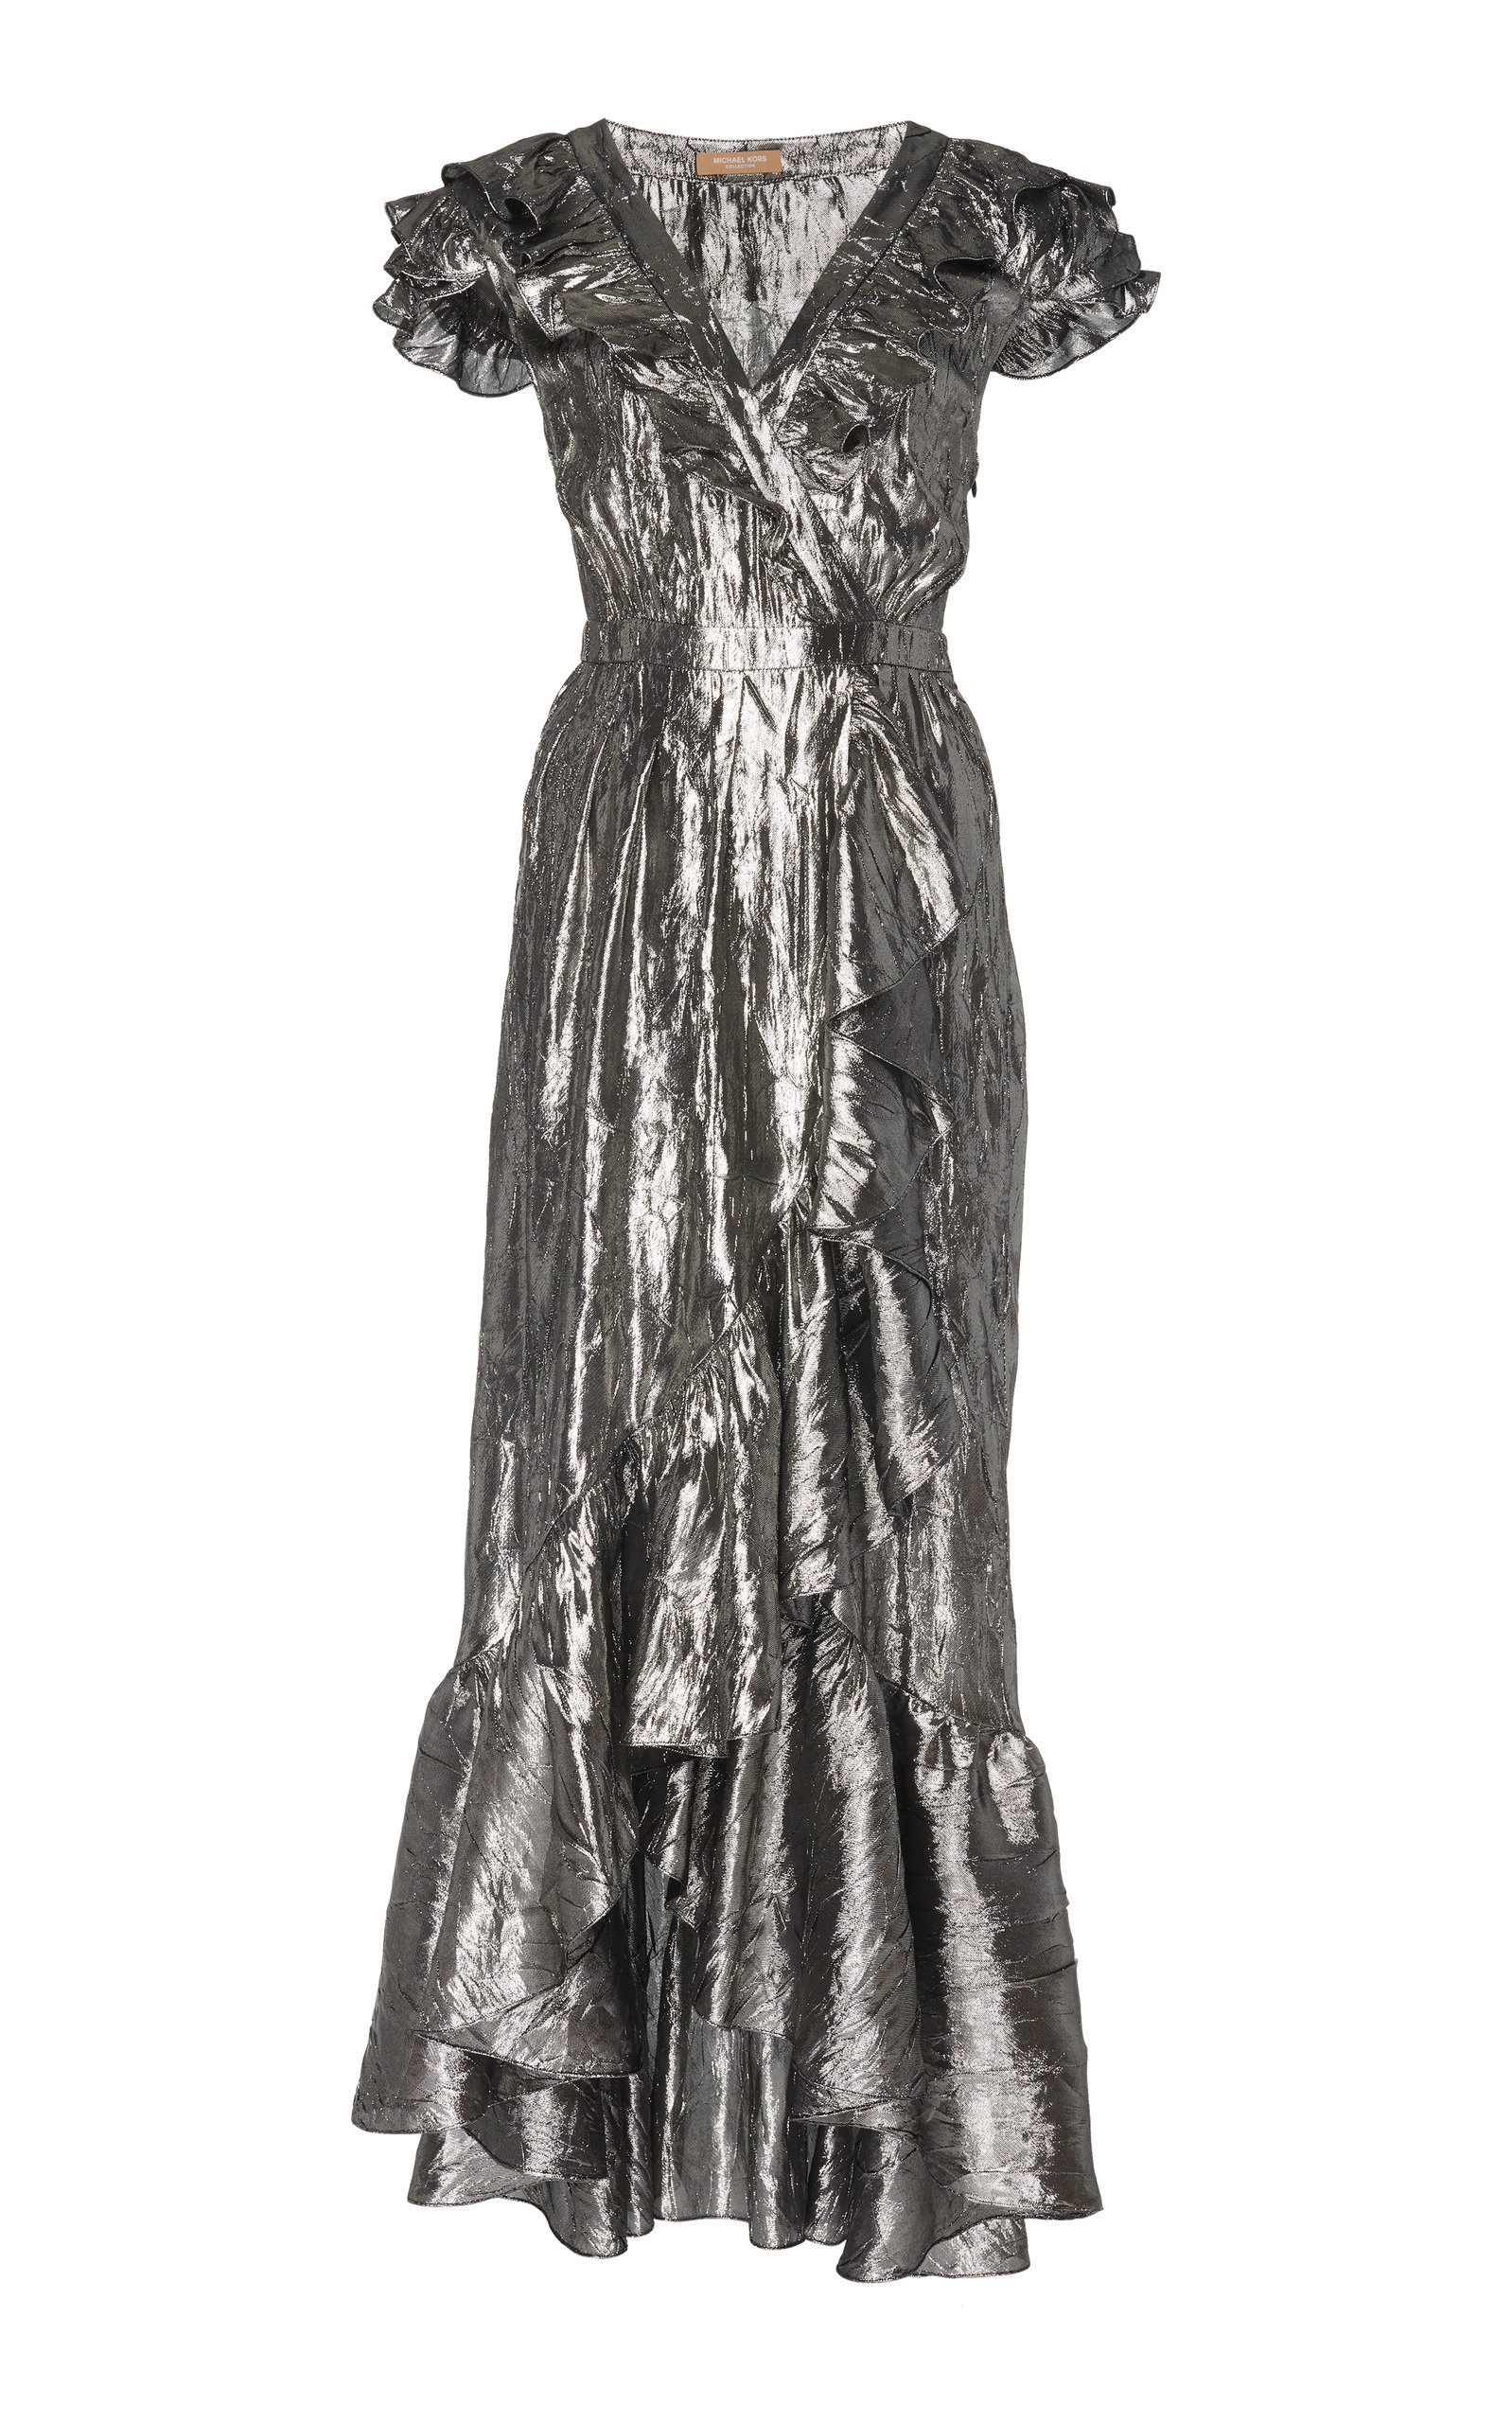 193ecc3bd4b80 Ruffled Metallic SIlk-Blend Wrap Dress by Michael Kors Collection ...